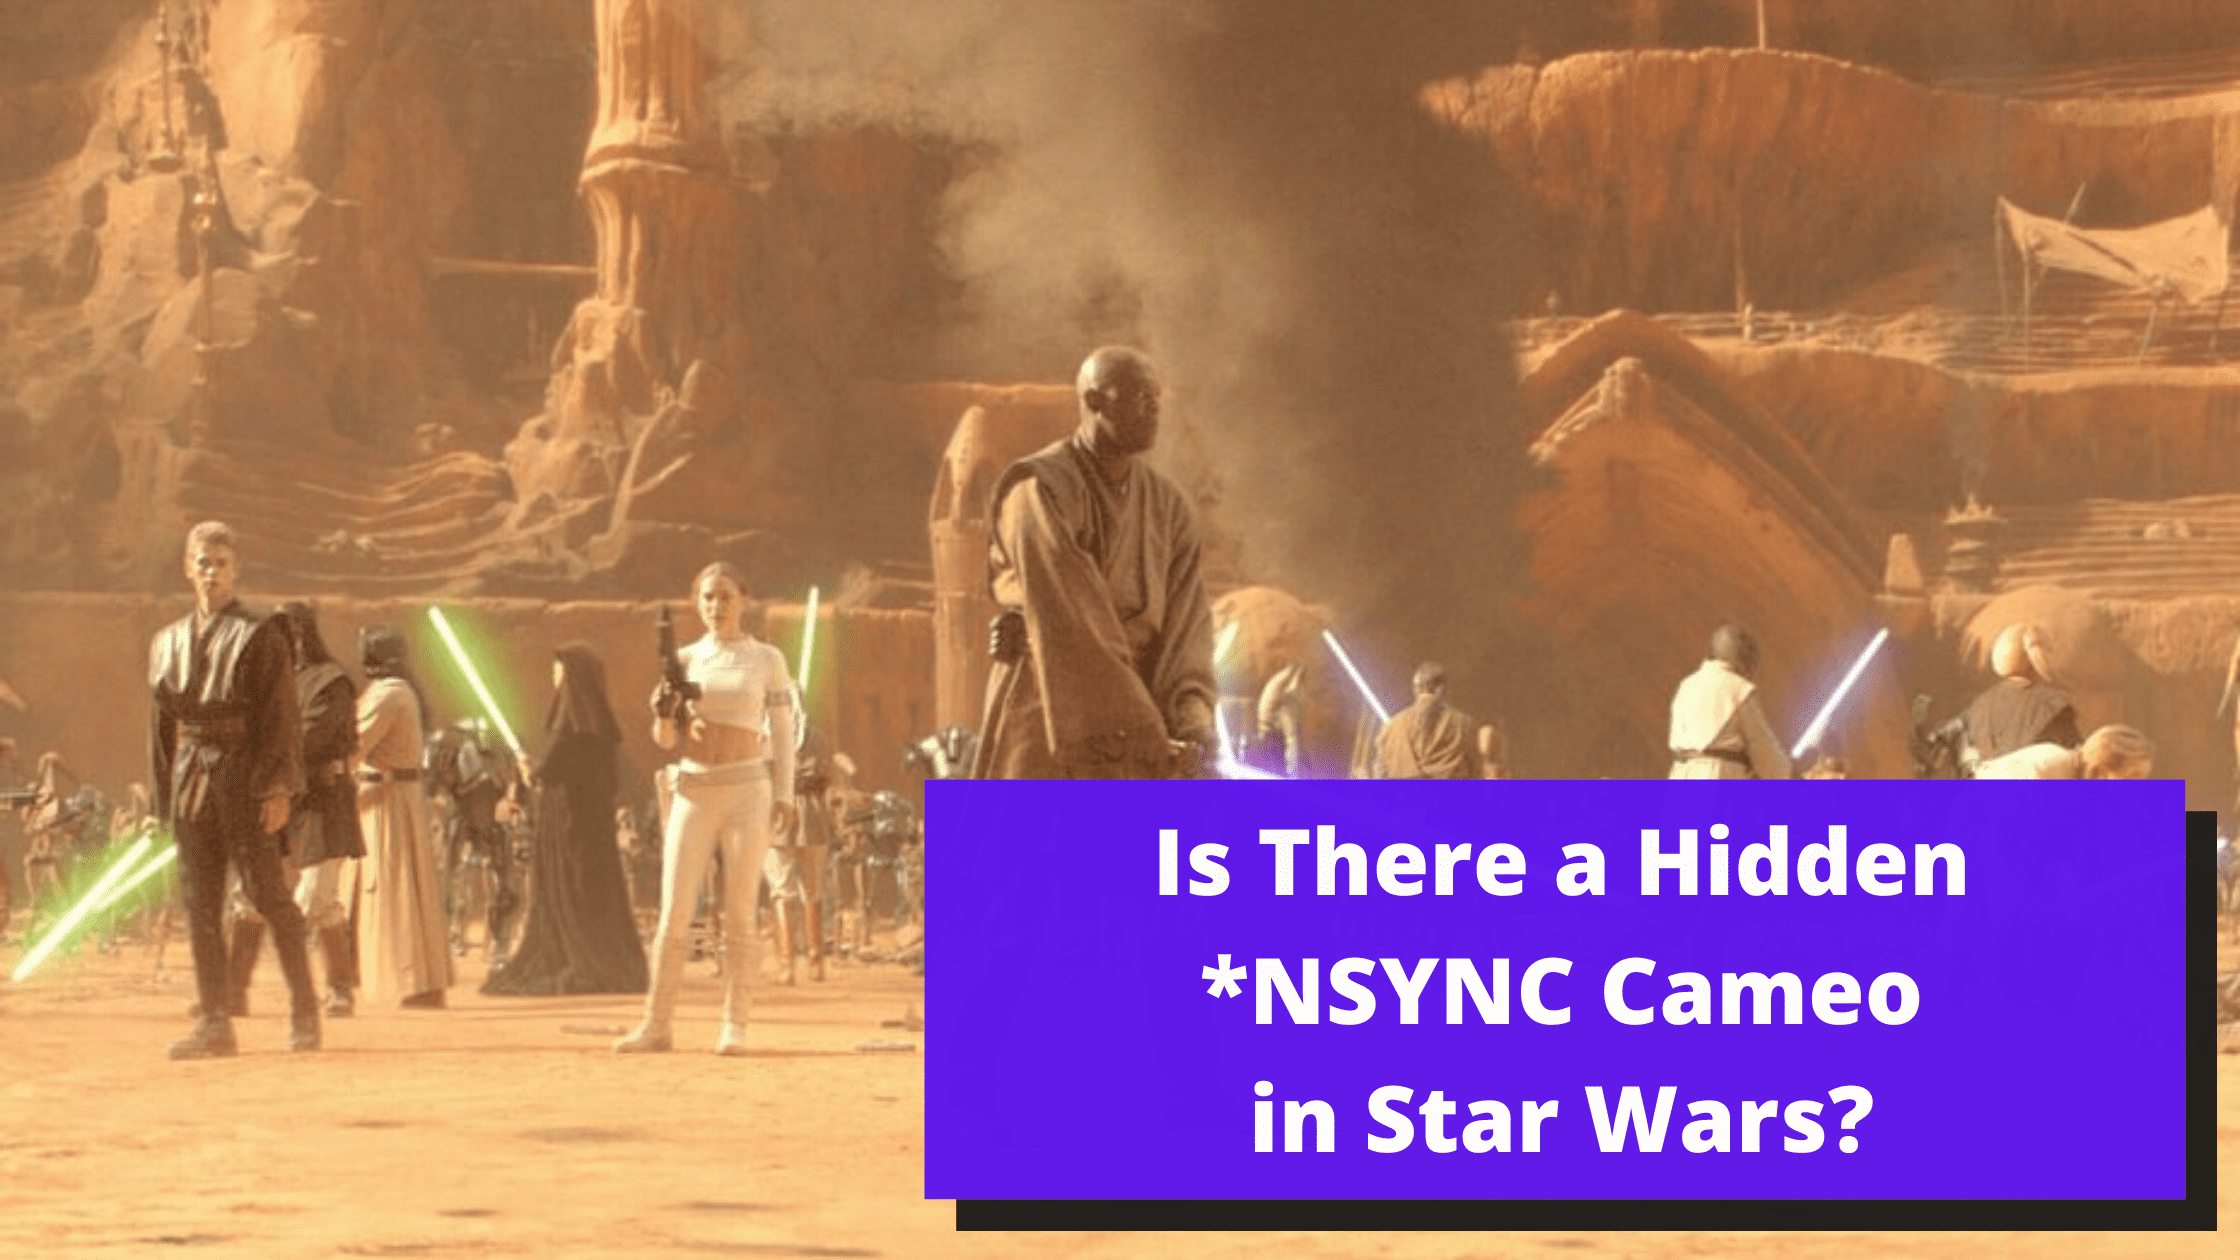 Is There a Hidden NSYNC Star Wars Cameo in Episode II?